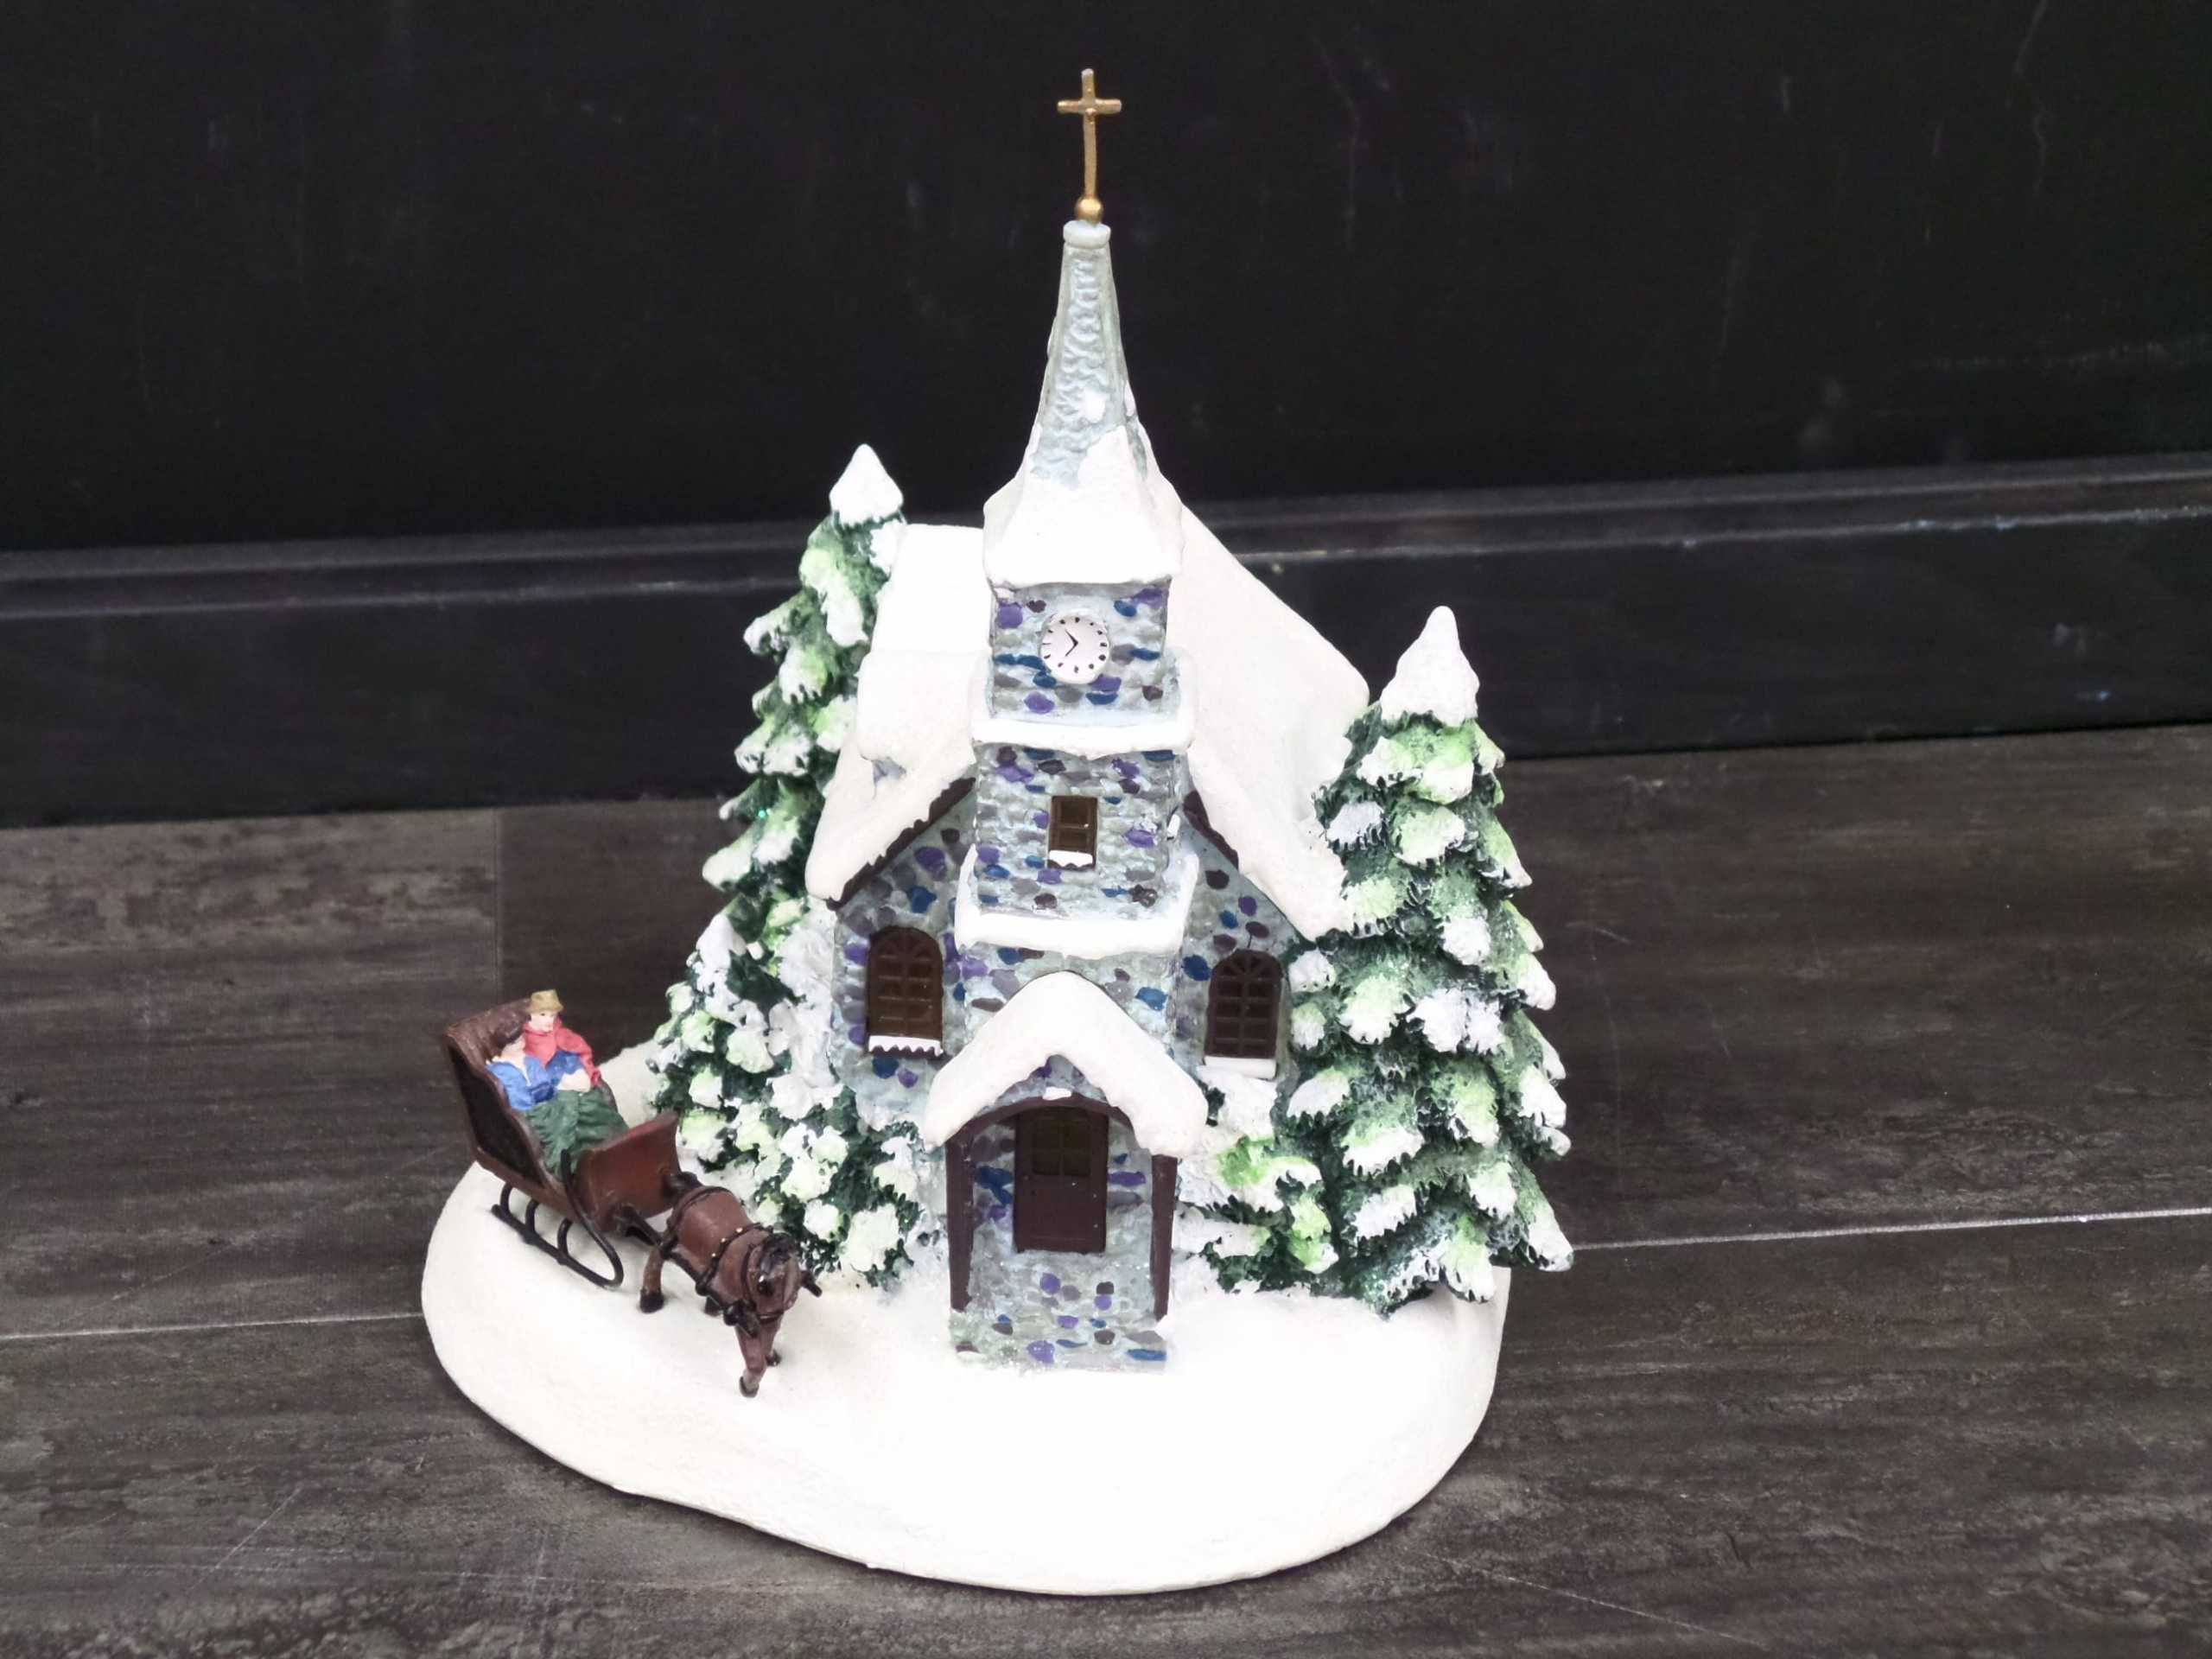 2003 THOMAS KINKADE CHURCH <br/> Donated by: WPBS SUPPORTER <br/> Valued at: $52